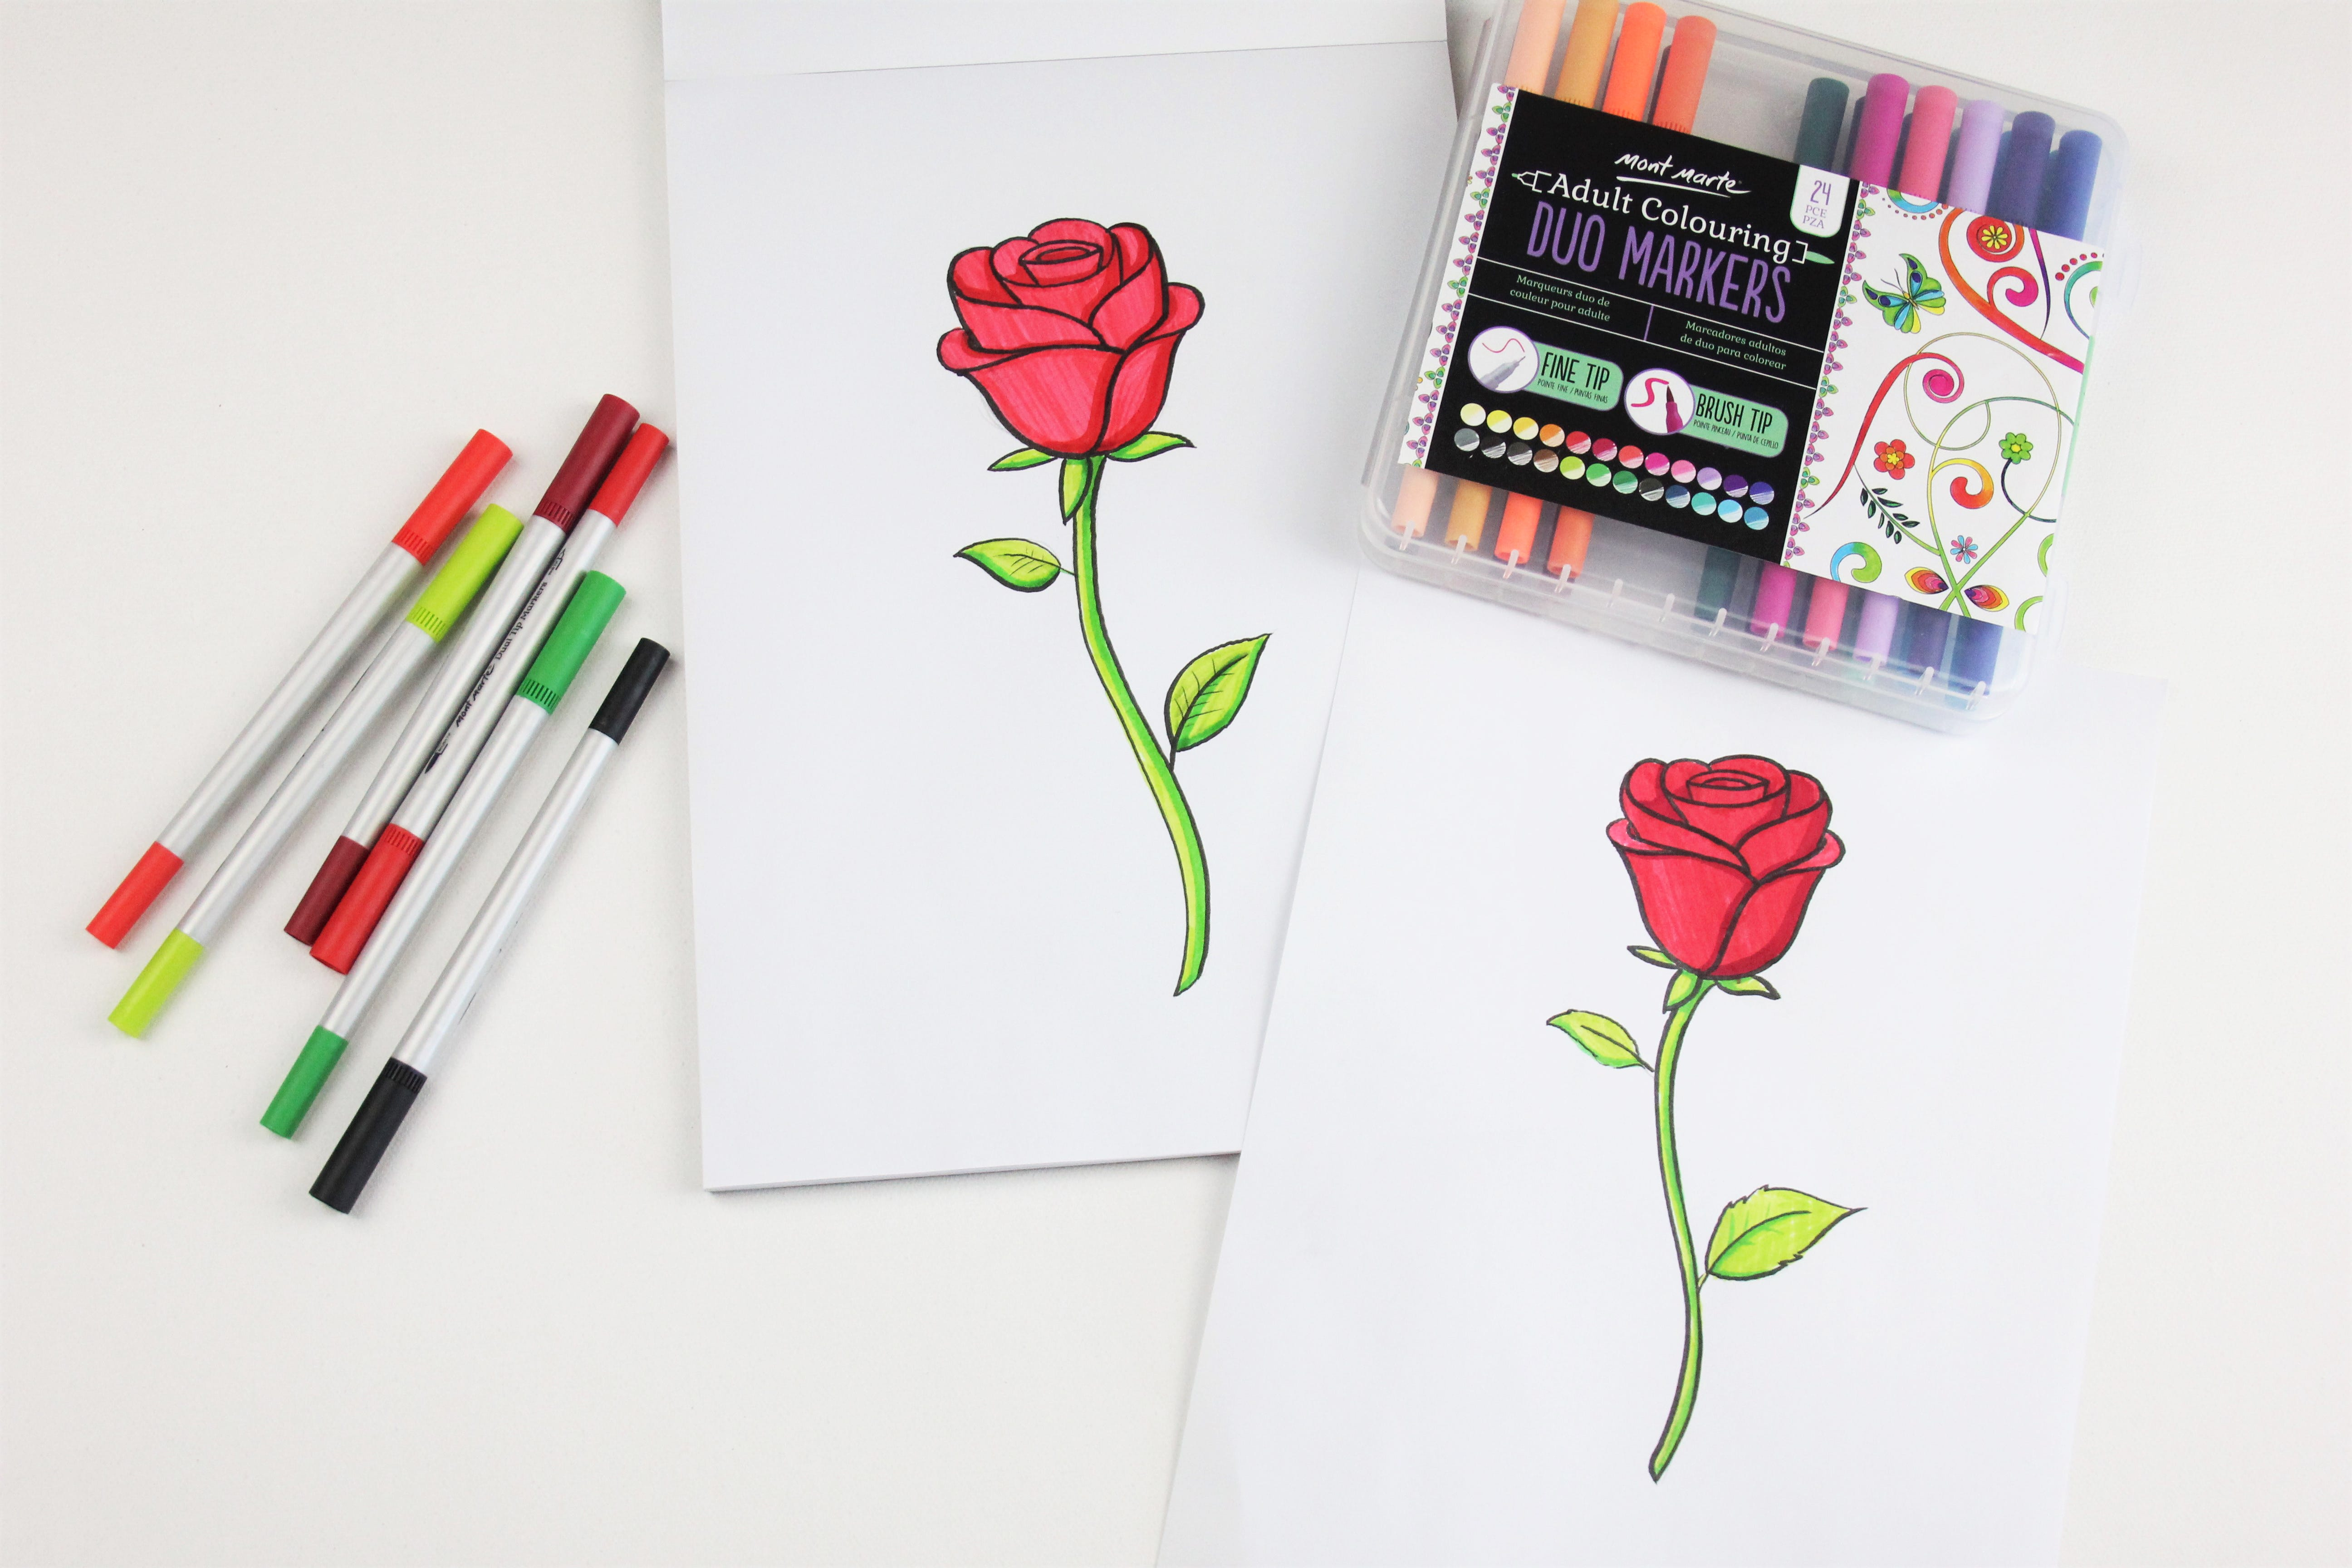 15 drawing ideas that anyone can try image 3